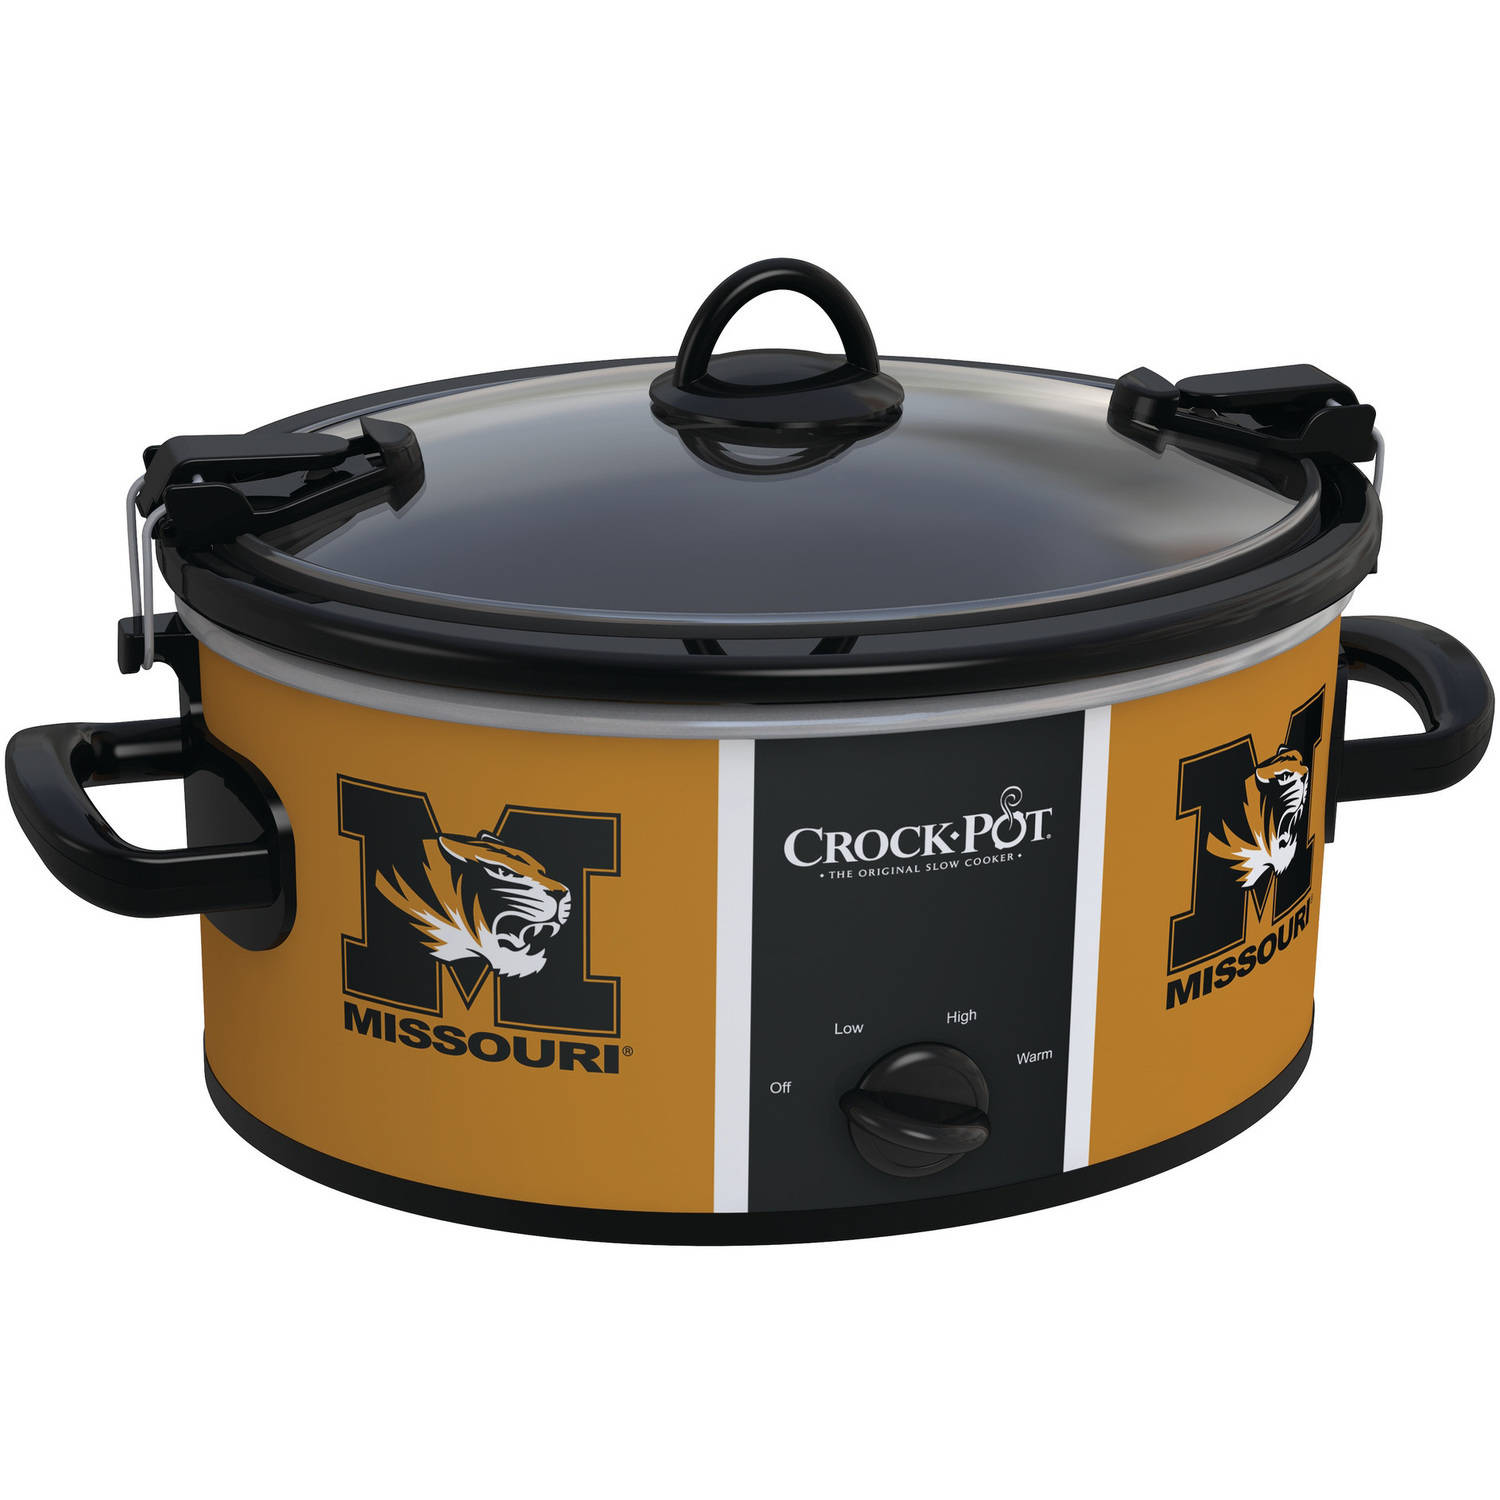 Crock-Pot NCAA 6-Quart Slow Cooker, Missouri Tigers